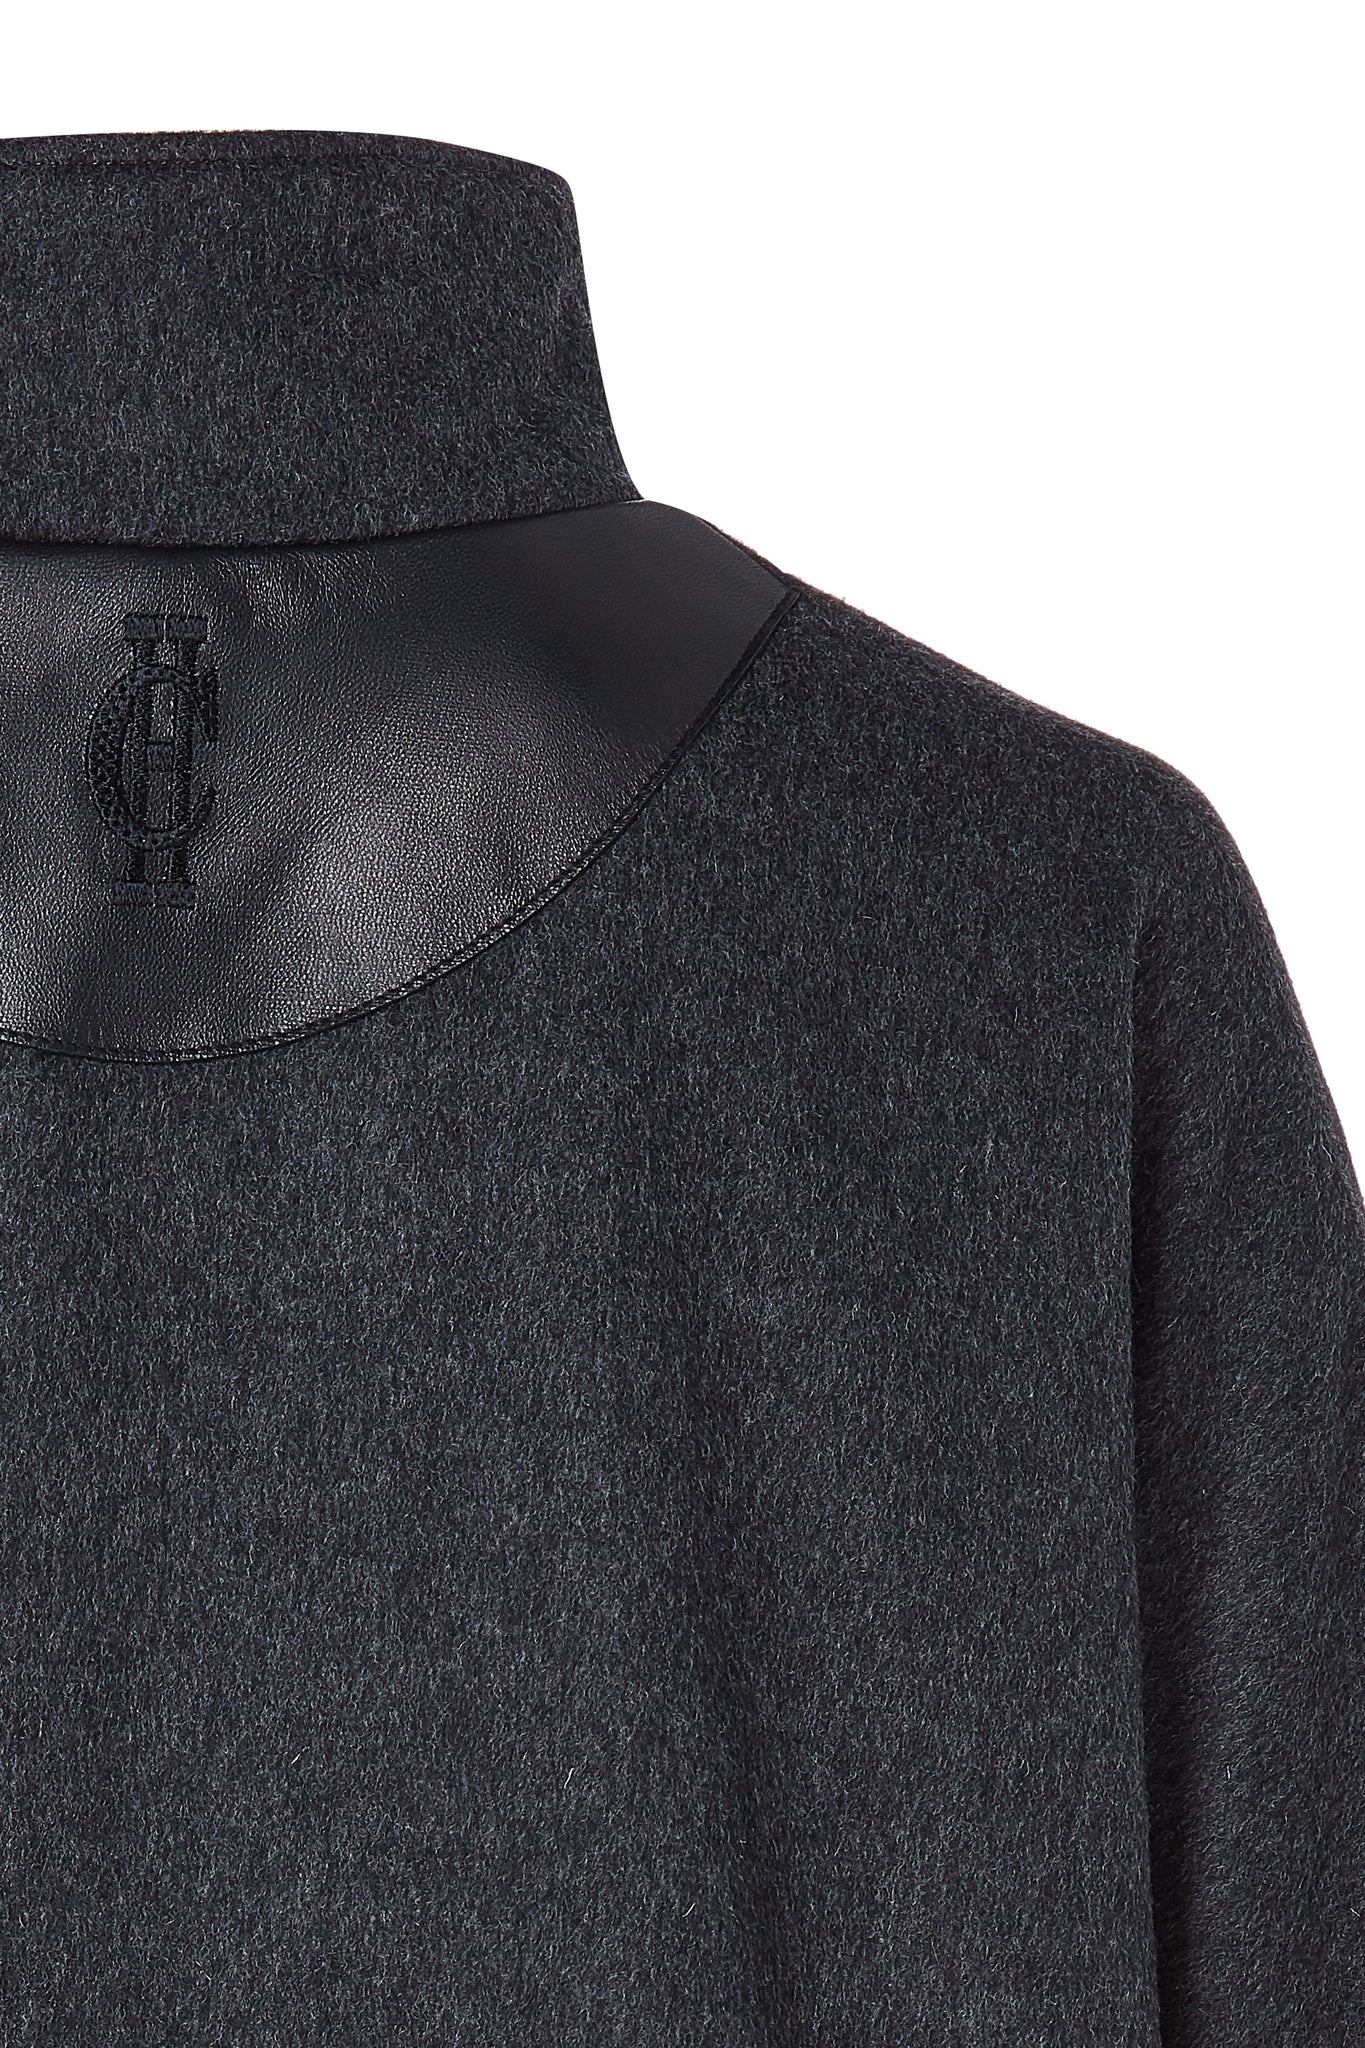 The Classic Cape (Graphite)